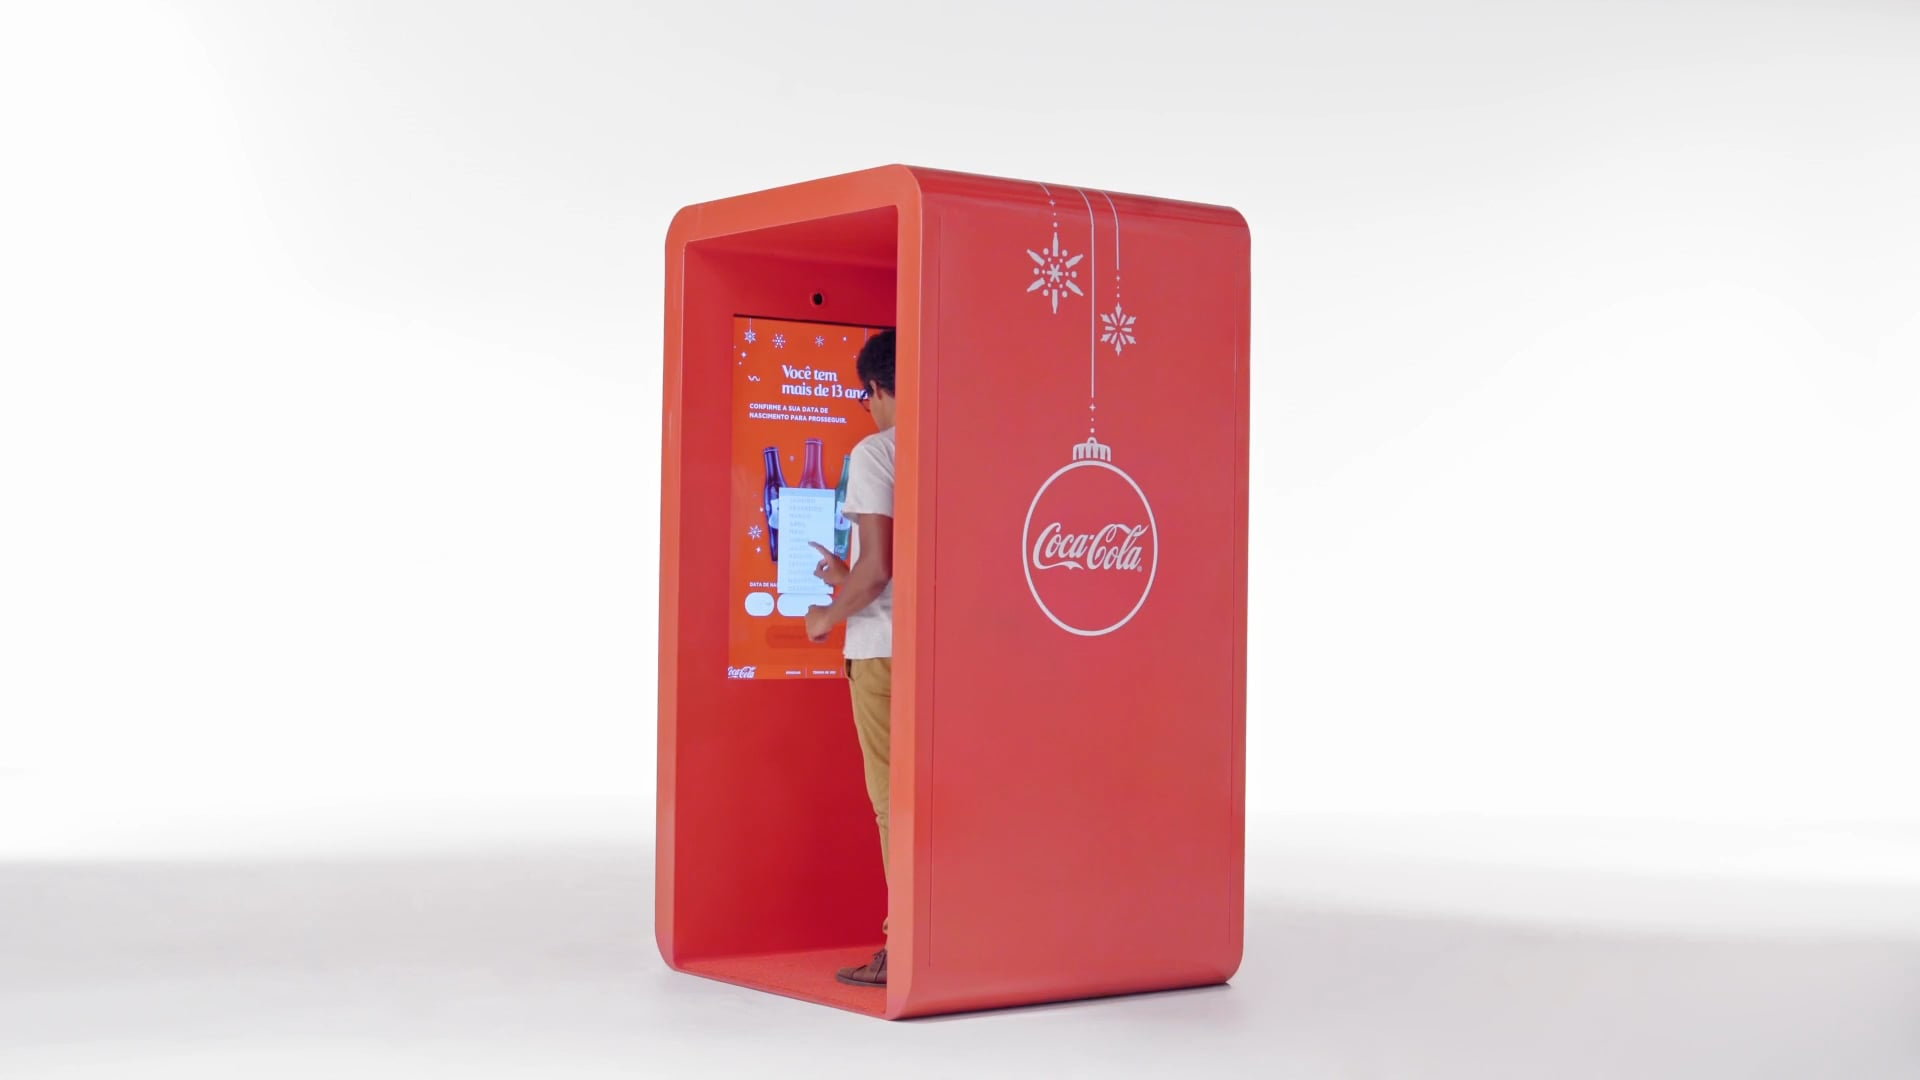 Coca-Cola Thanks Box